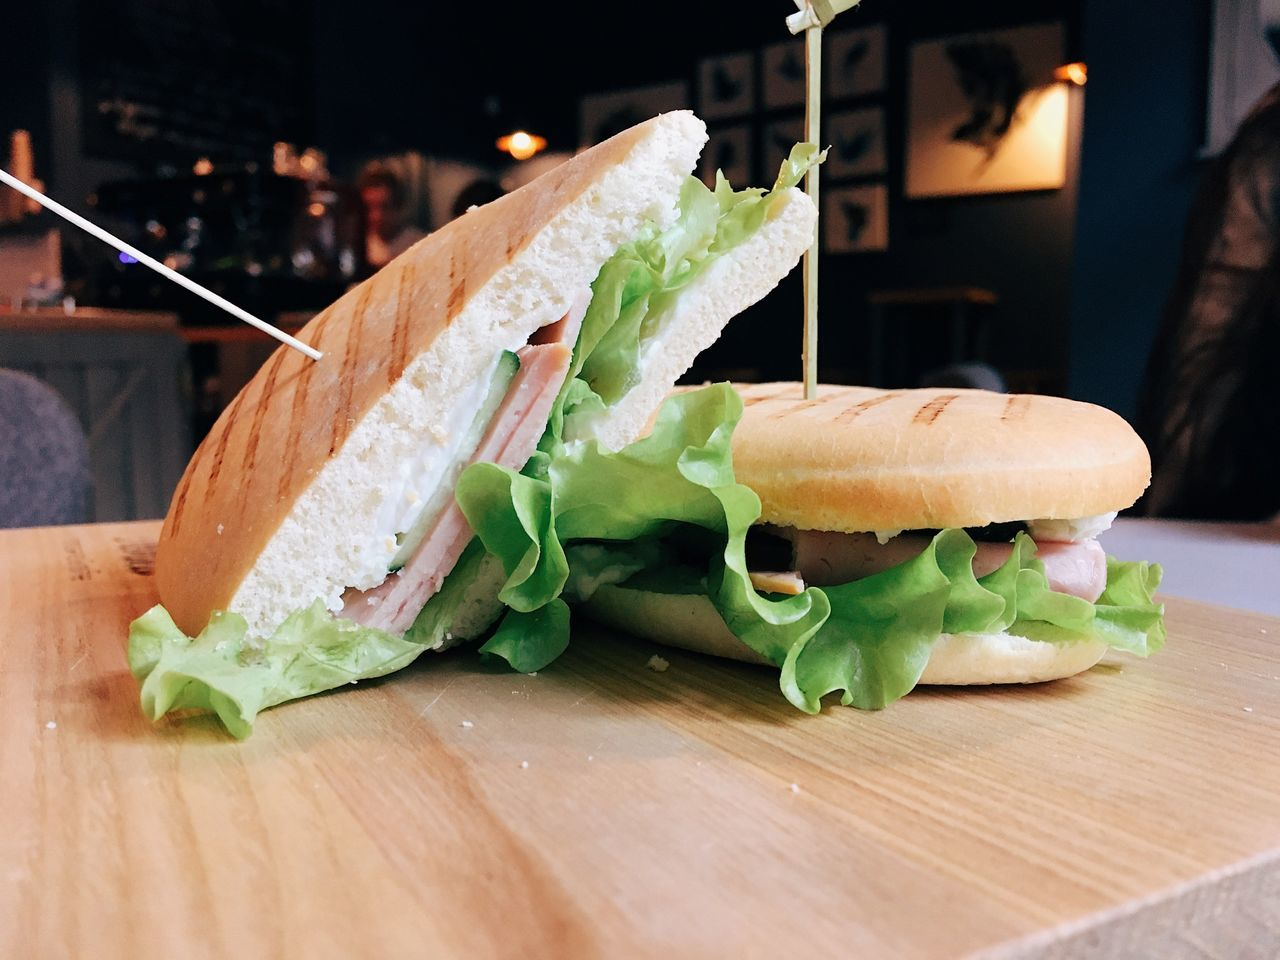 Fresh sandwiches with ham and greens Food Food And Drink Freshness Table Indoors  Healthy Eating Sandwich Vegetable No People Close-up Cutting Board Ready-to-eat Sandwiches